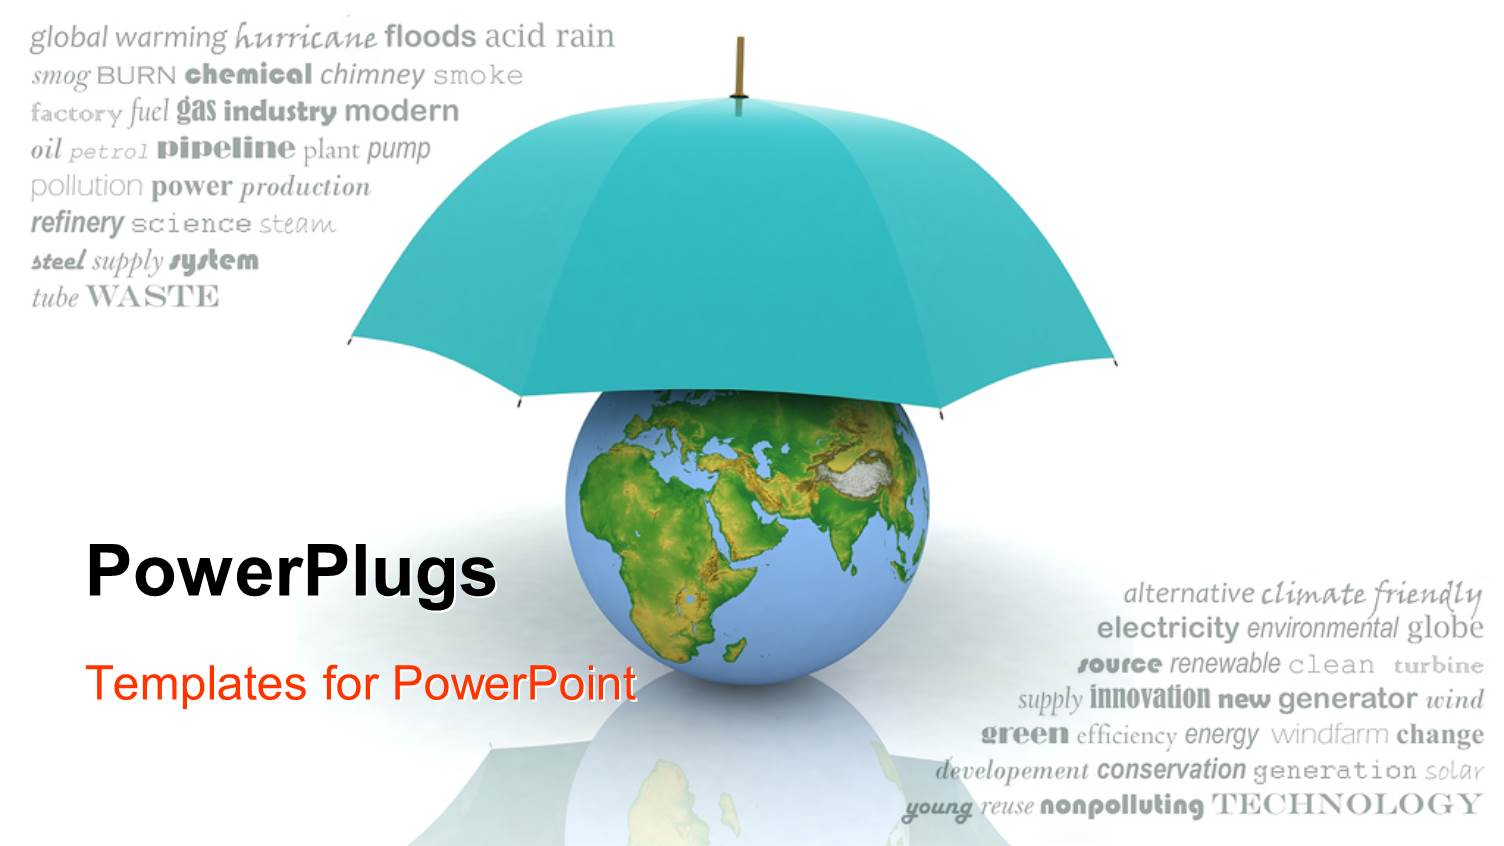 Powerpoint template a blue umbrella protecting the earth 23968 powerpoint template displaying a blue umbrella protecting the earth toneelgroepblik Choice Image